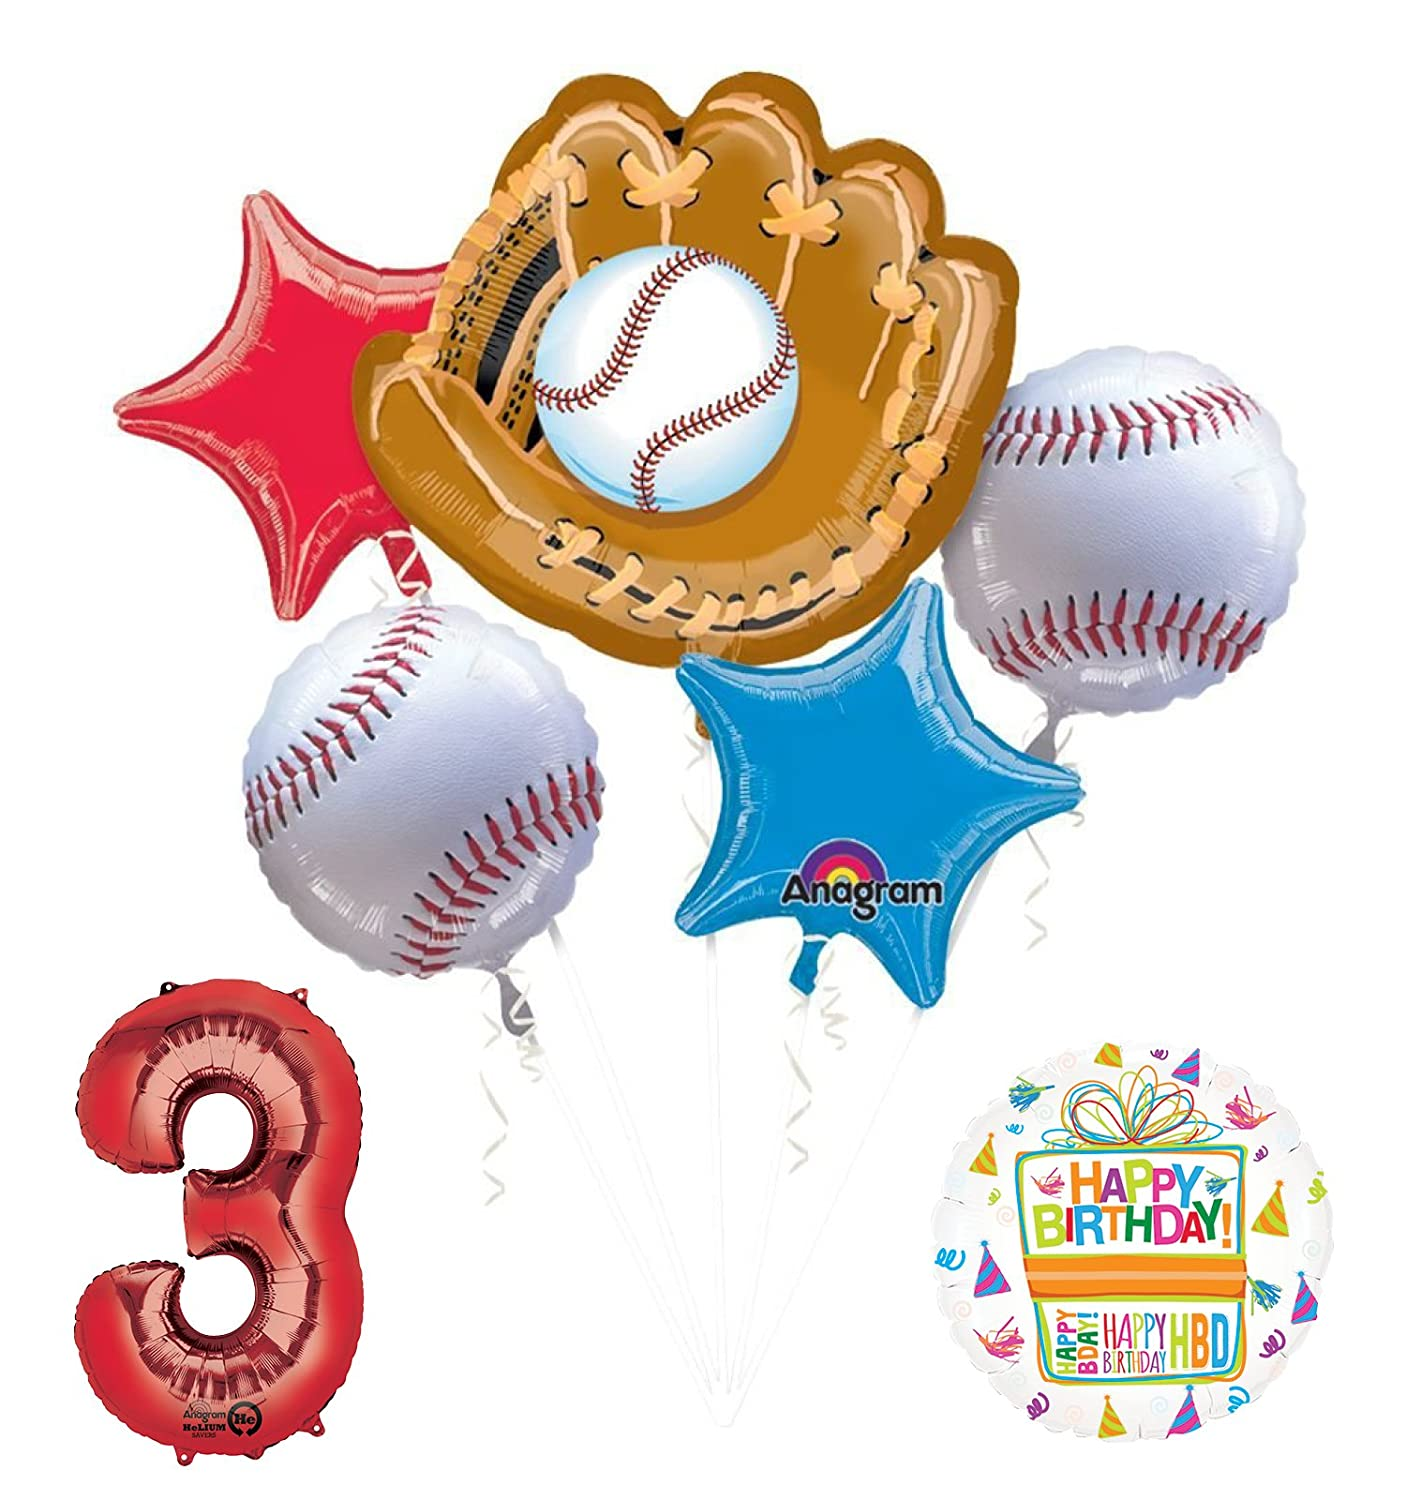 Mayflower Products Baseball 3rd Birthday Party Supplies and Balloon Bouquet Decorations